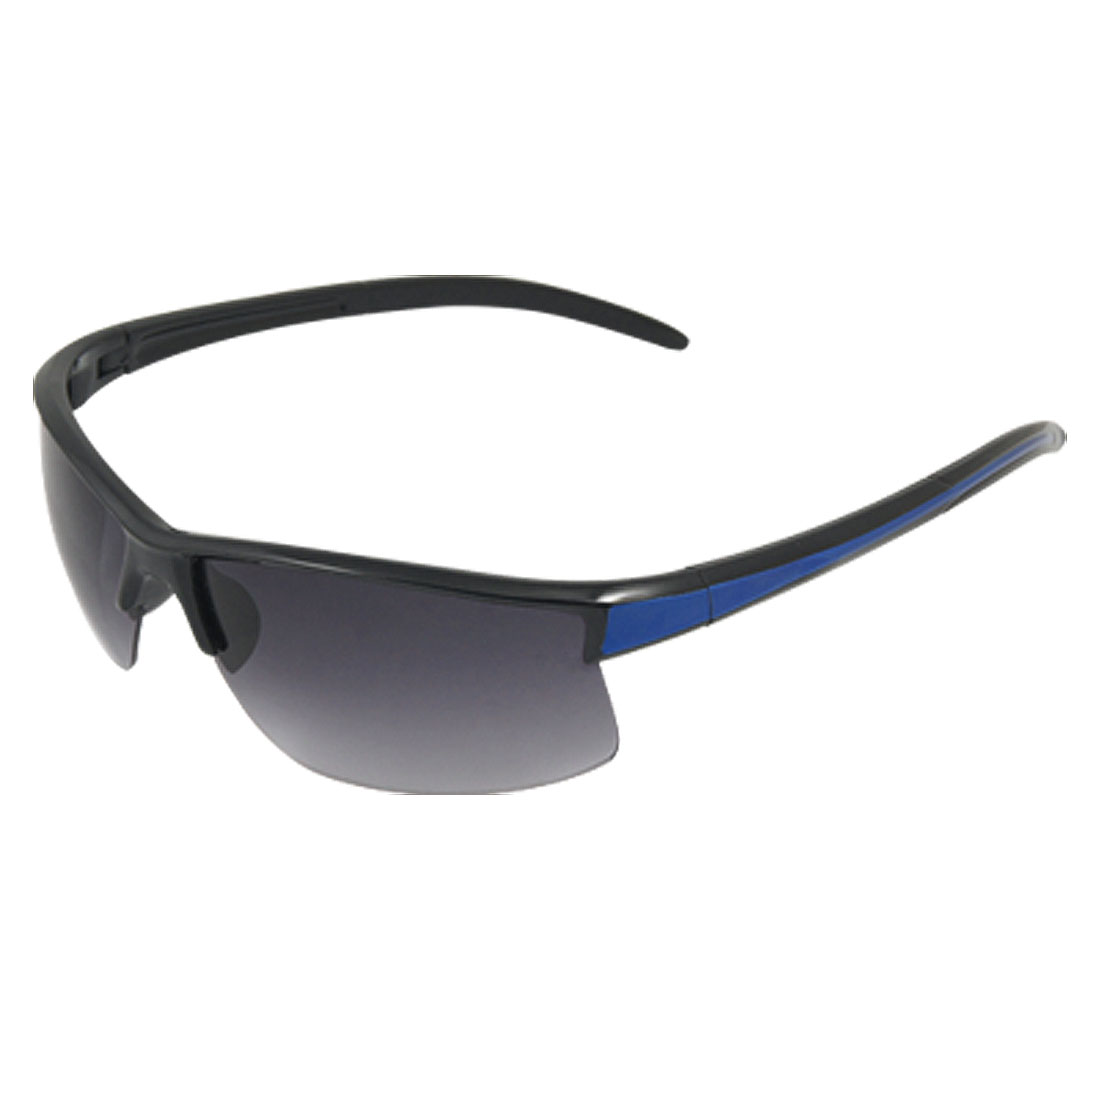 Unisex Semi Rim Blue Detailing Skiing Beach Sunglasses